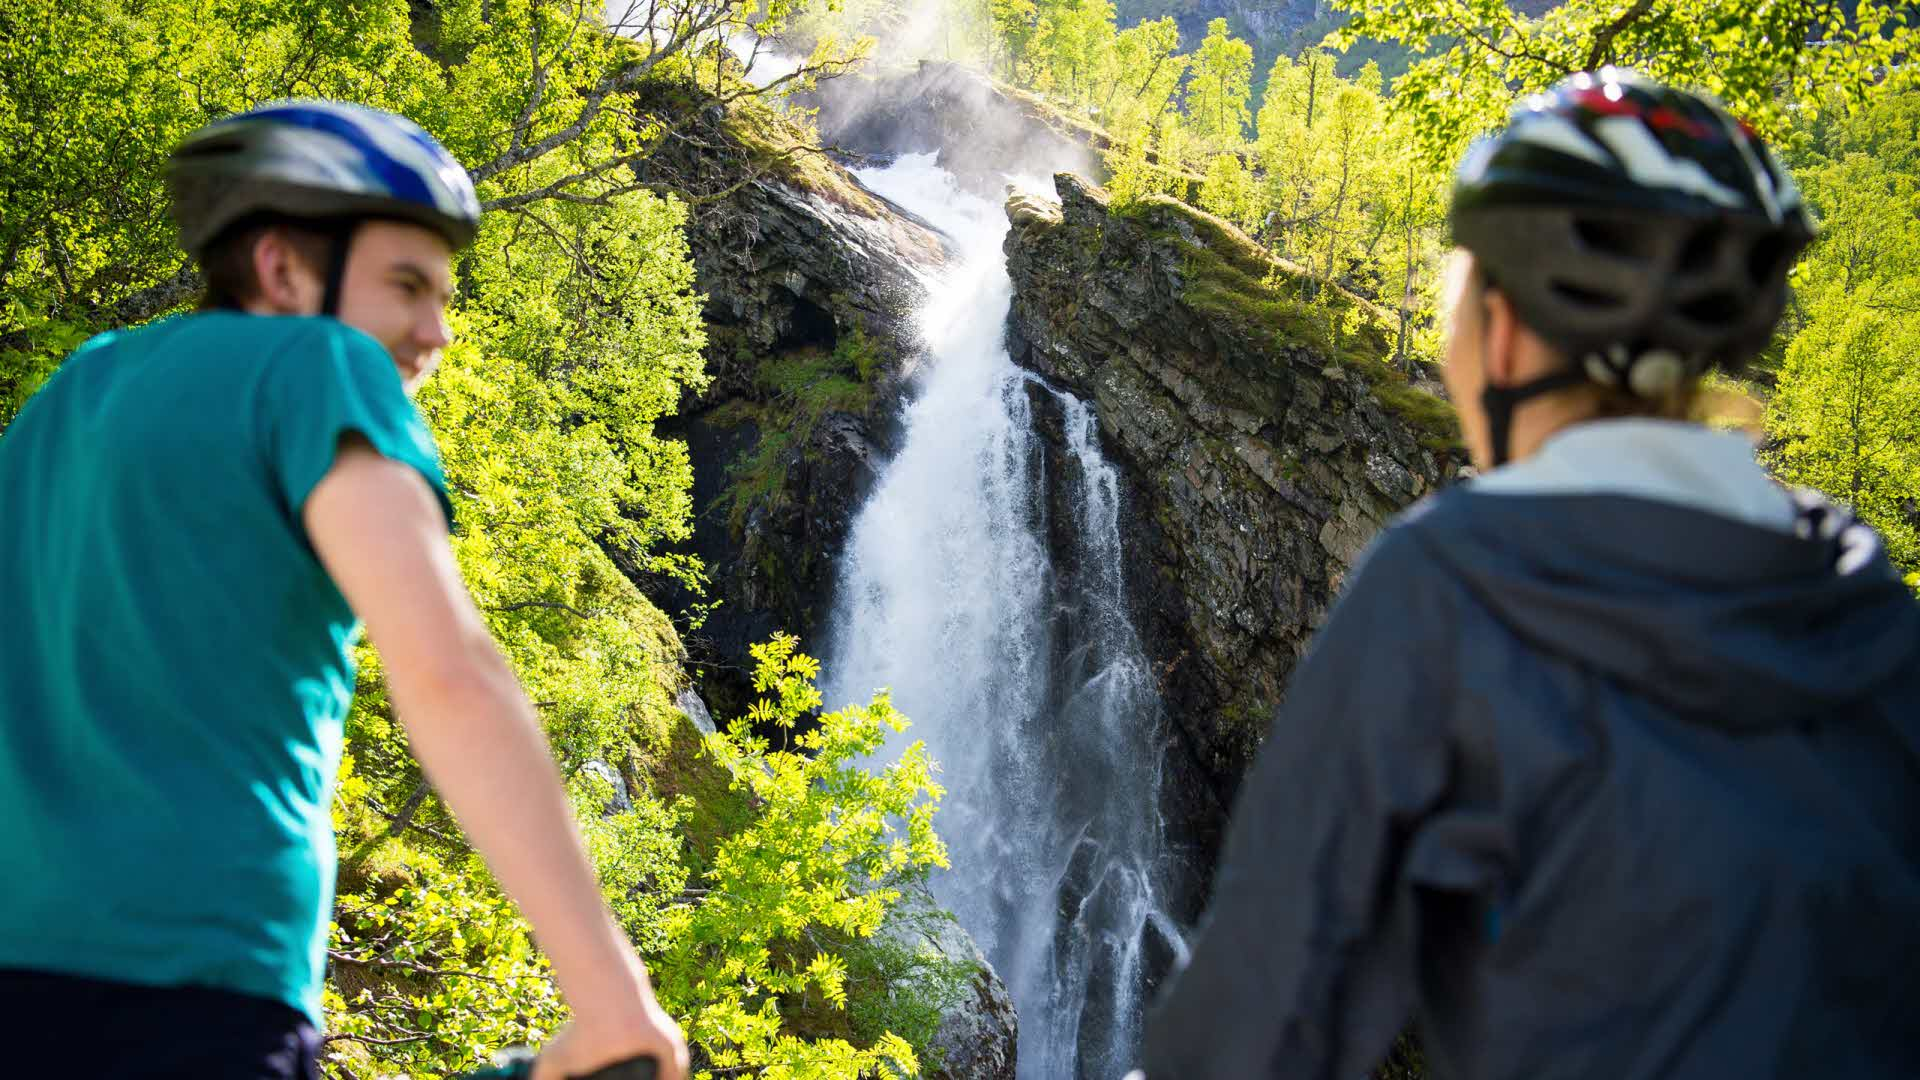 Two people wearing bike helmets and looking towards a waterfall in Flåmsdalen